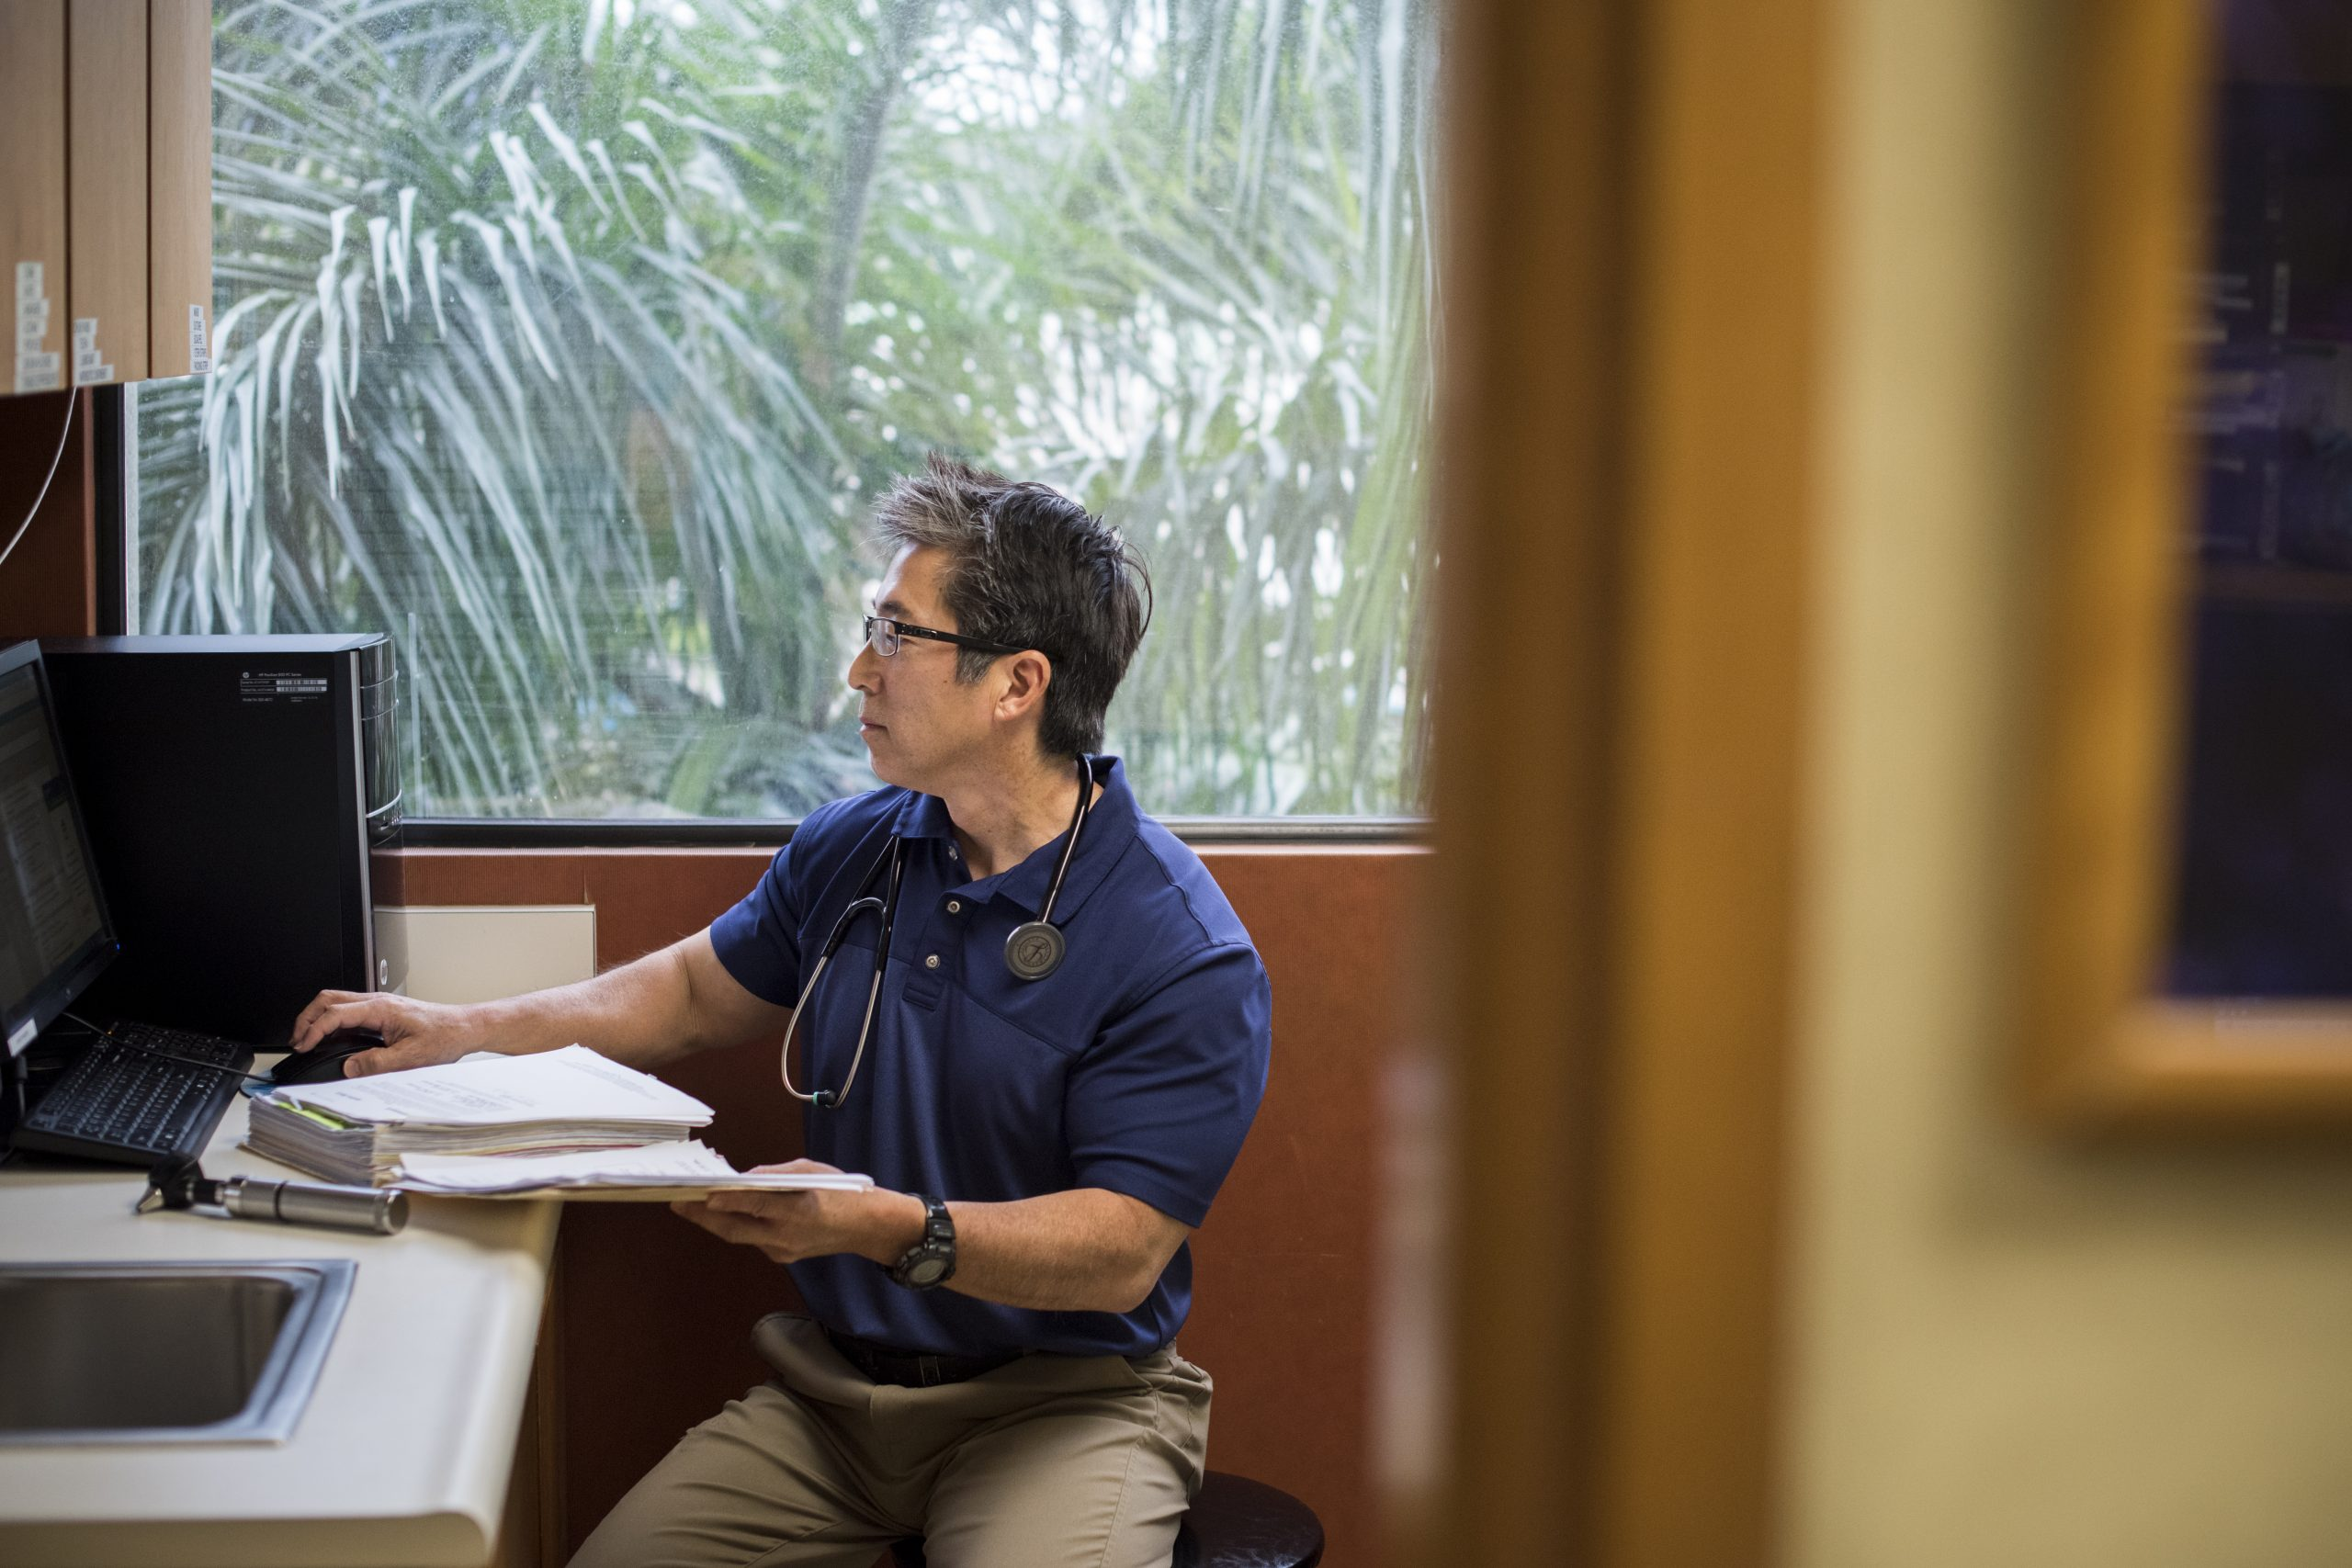 Meet the Community Physician Committed to Pursuing Balance Between Family and Medicine